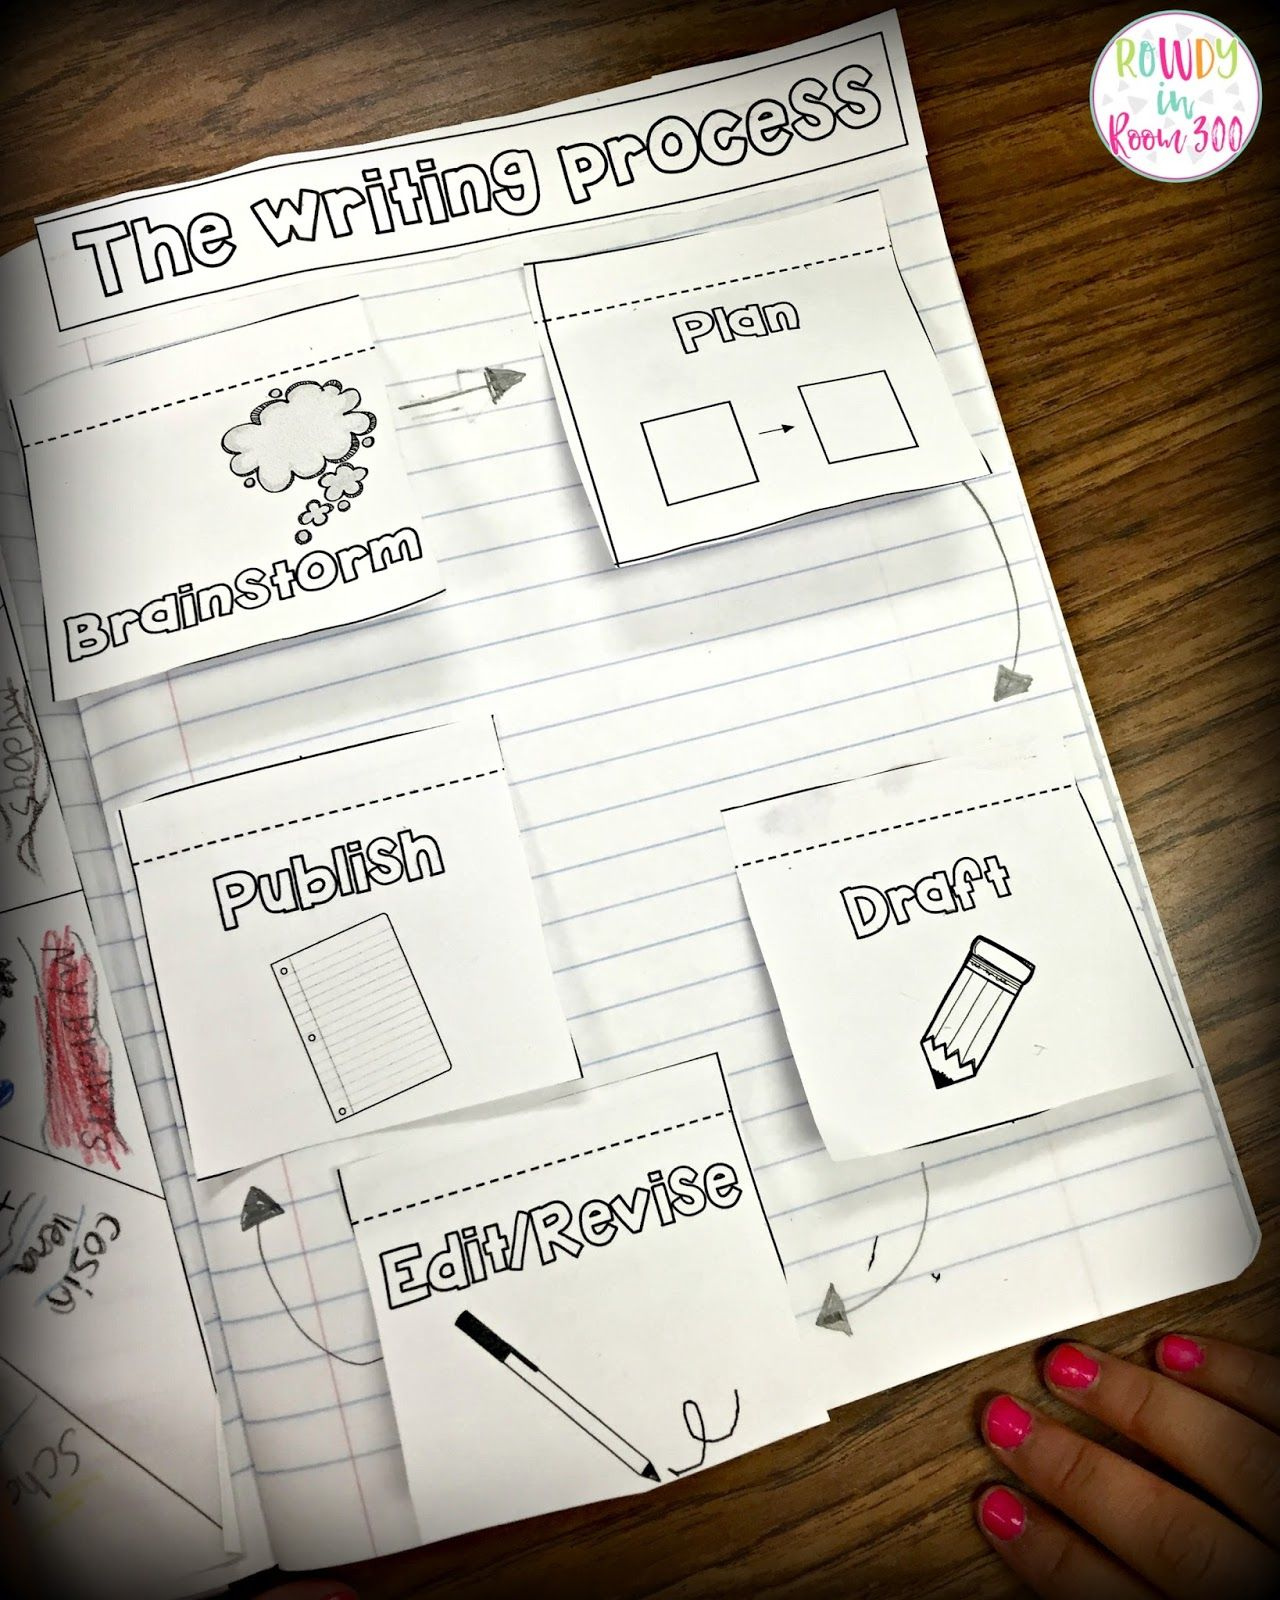 Writing Process Interactive Notebook Rowdy In Room 300